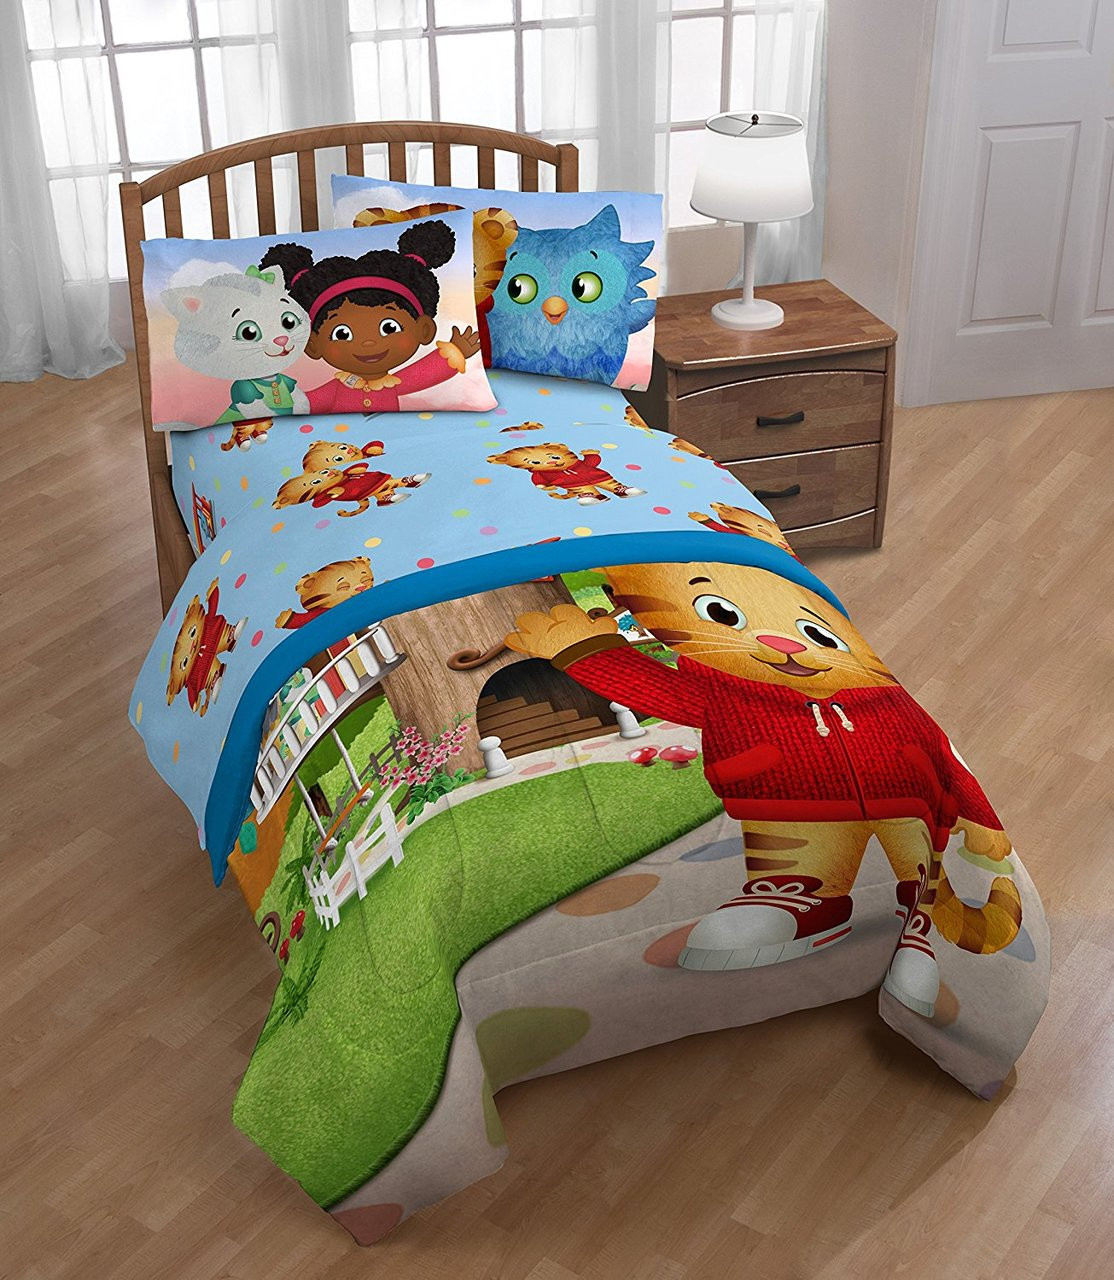 Kids Daniel Tiger Treehouse Pals Twin Sheet Set Image 1 2 3